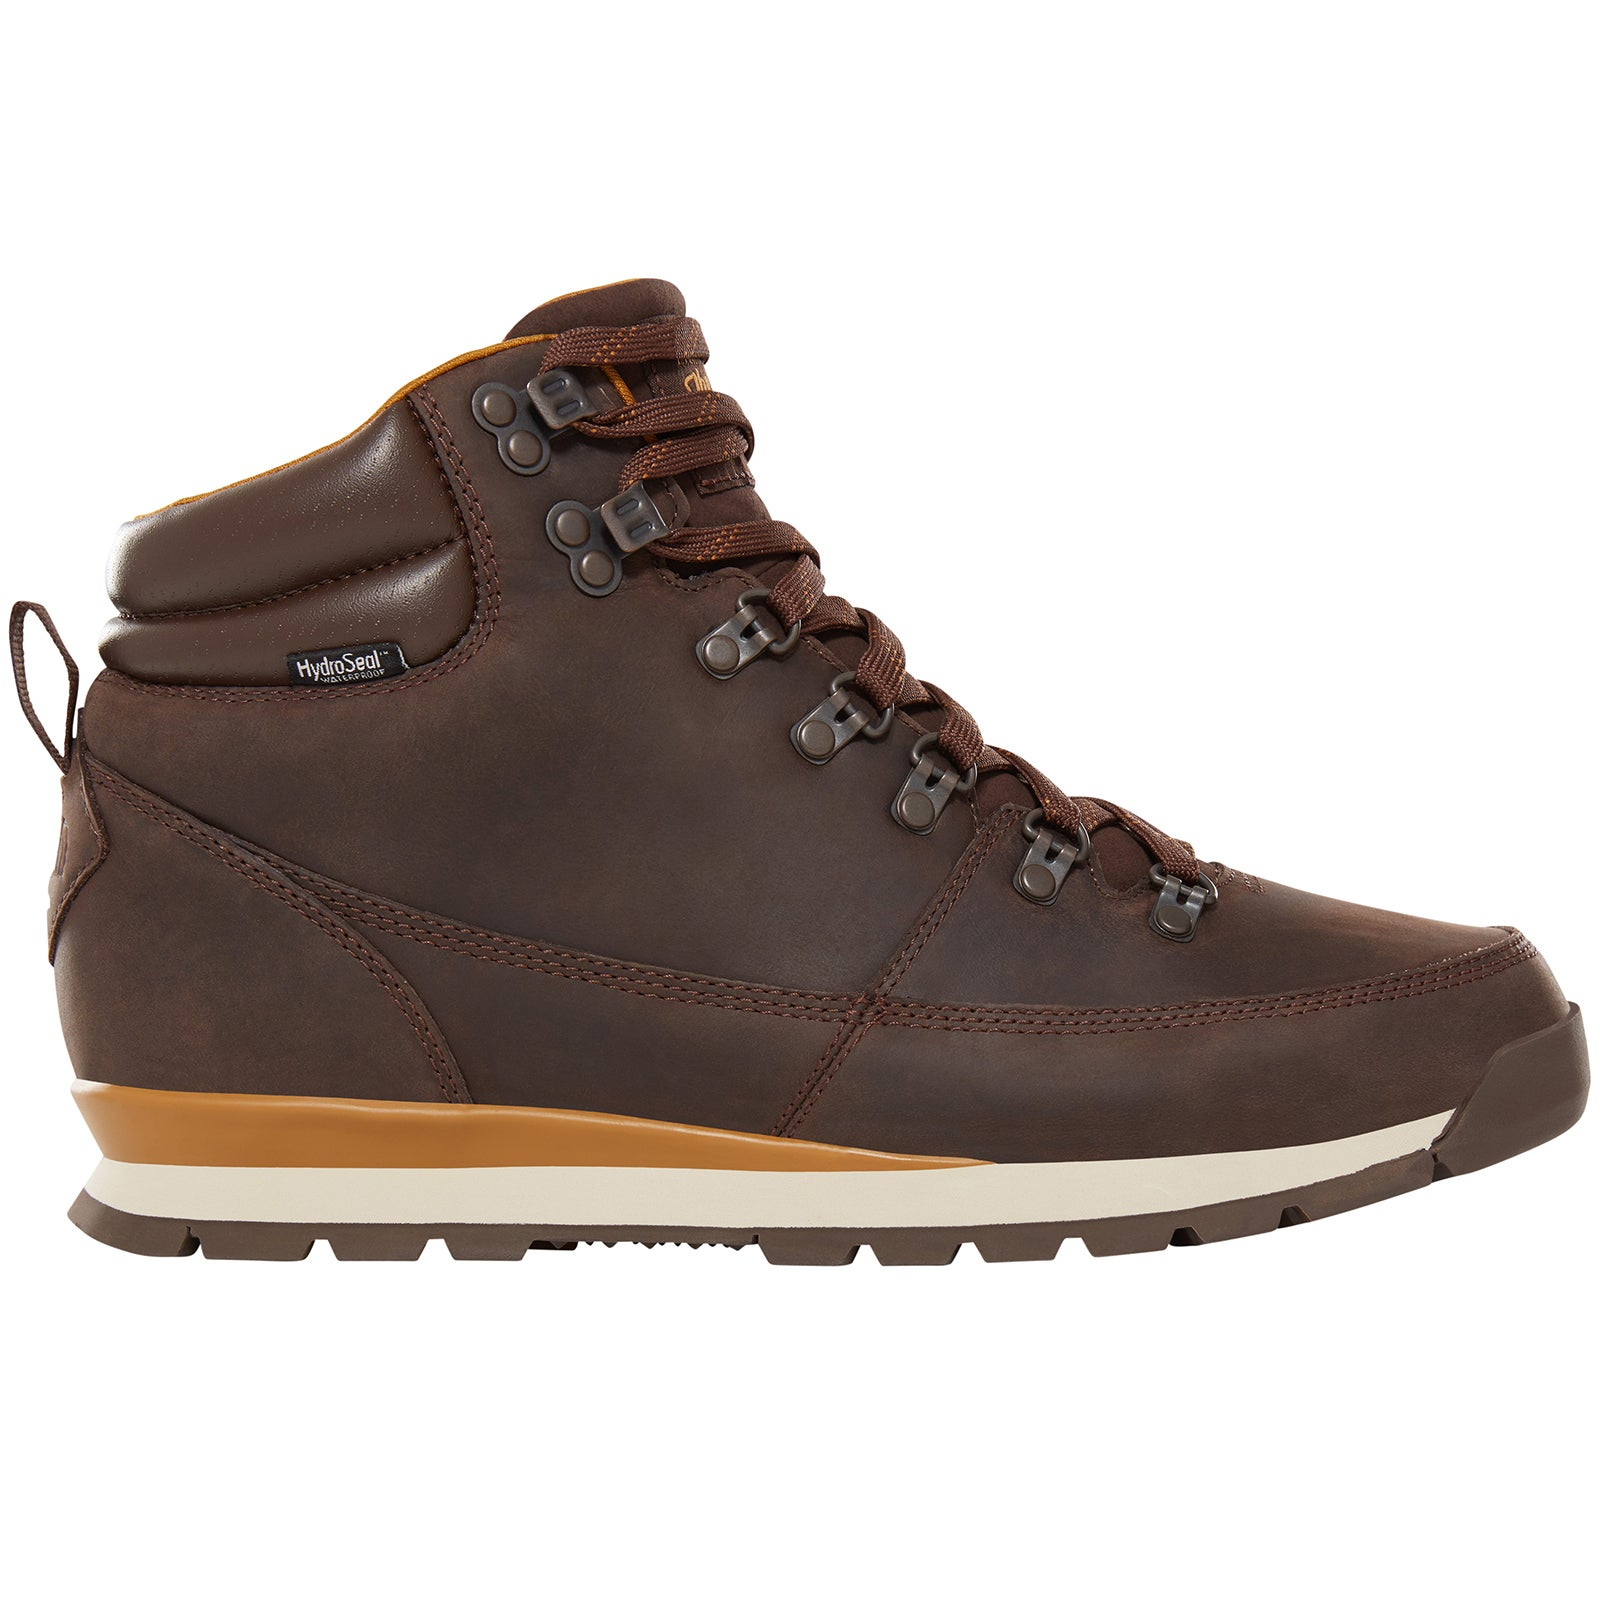 North Face Back To Berkeley Redux Leather Boots - Chocolate Brown Golden Brown